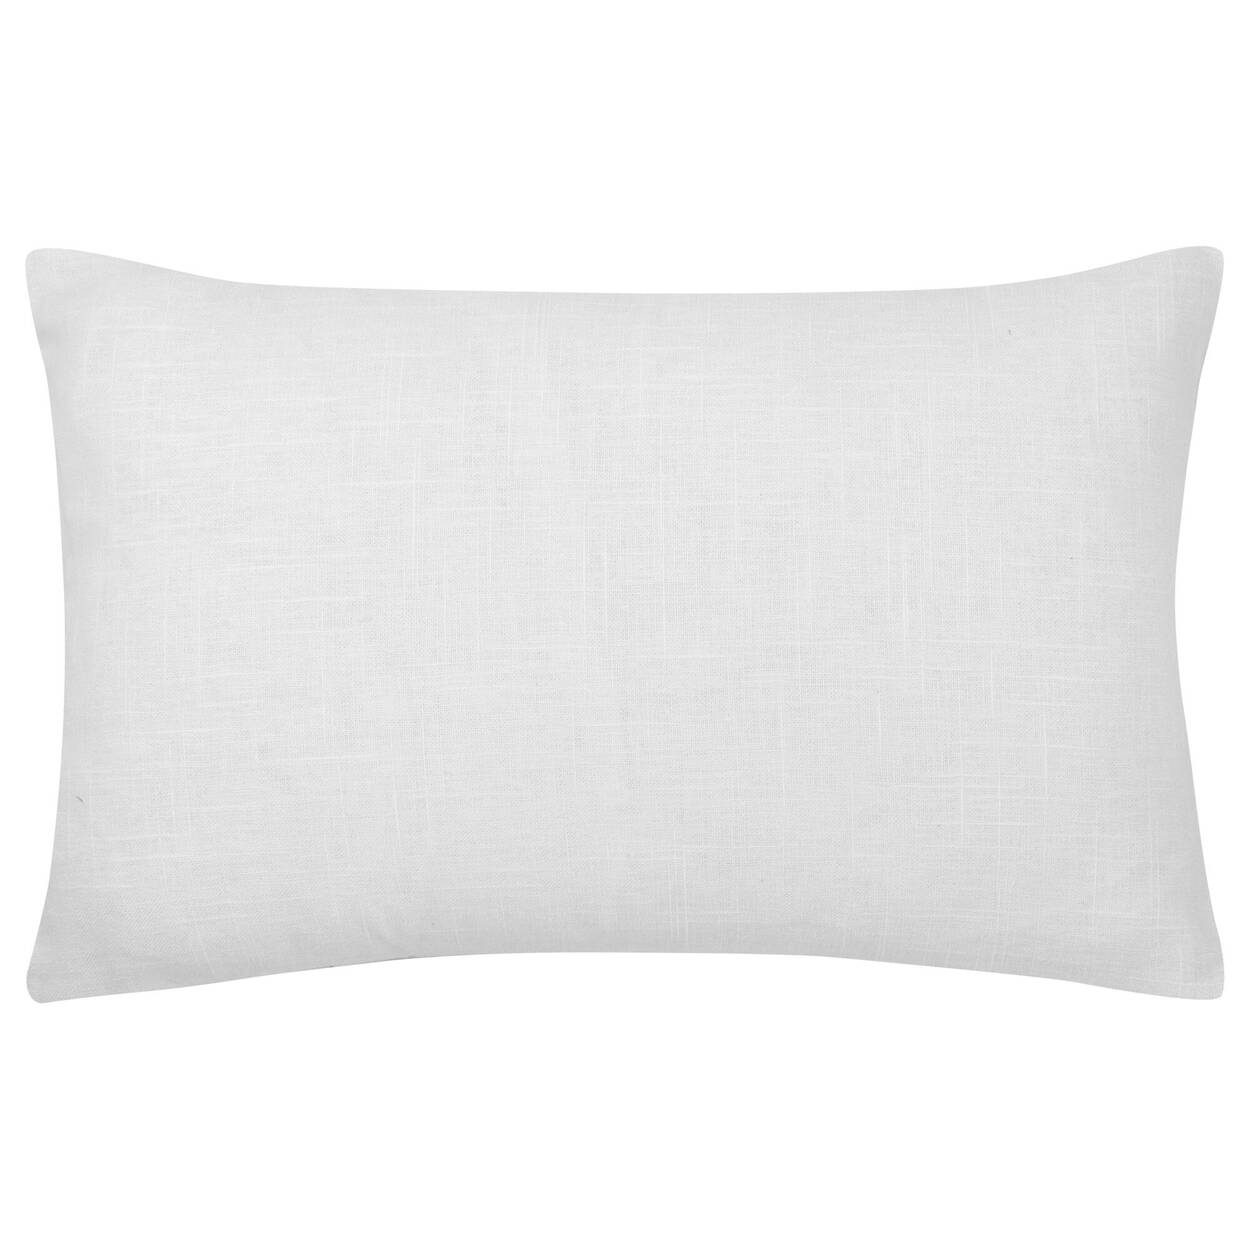 "Eucalyptus Decorative Pillow 13"" x 20"""